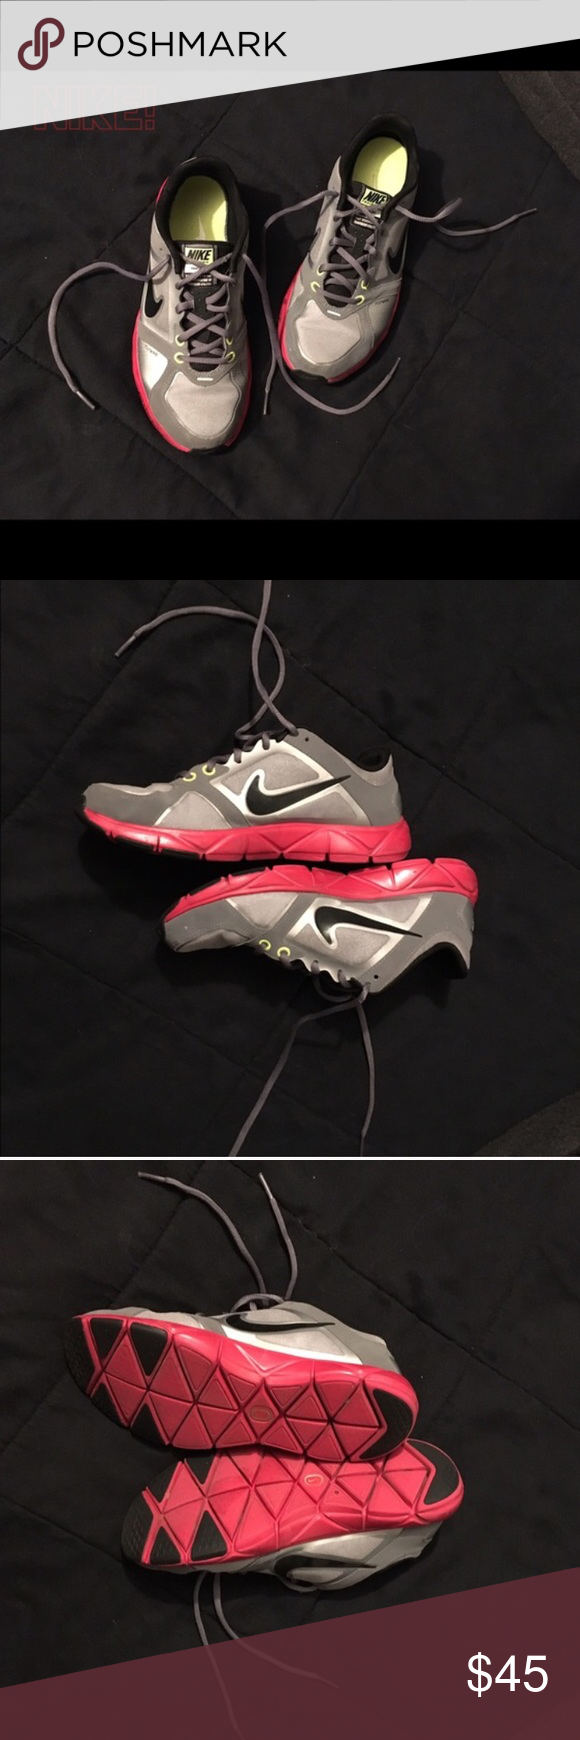 buy popular 34b73 04586 Nike trainers Grey, black, and red trainers. Lightly worn with tons of life  left! Reposhing because they are too small for me!! Women s size 8 Nike  Shoes ...